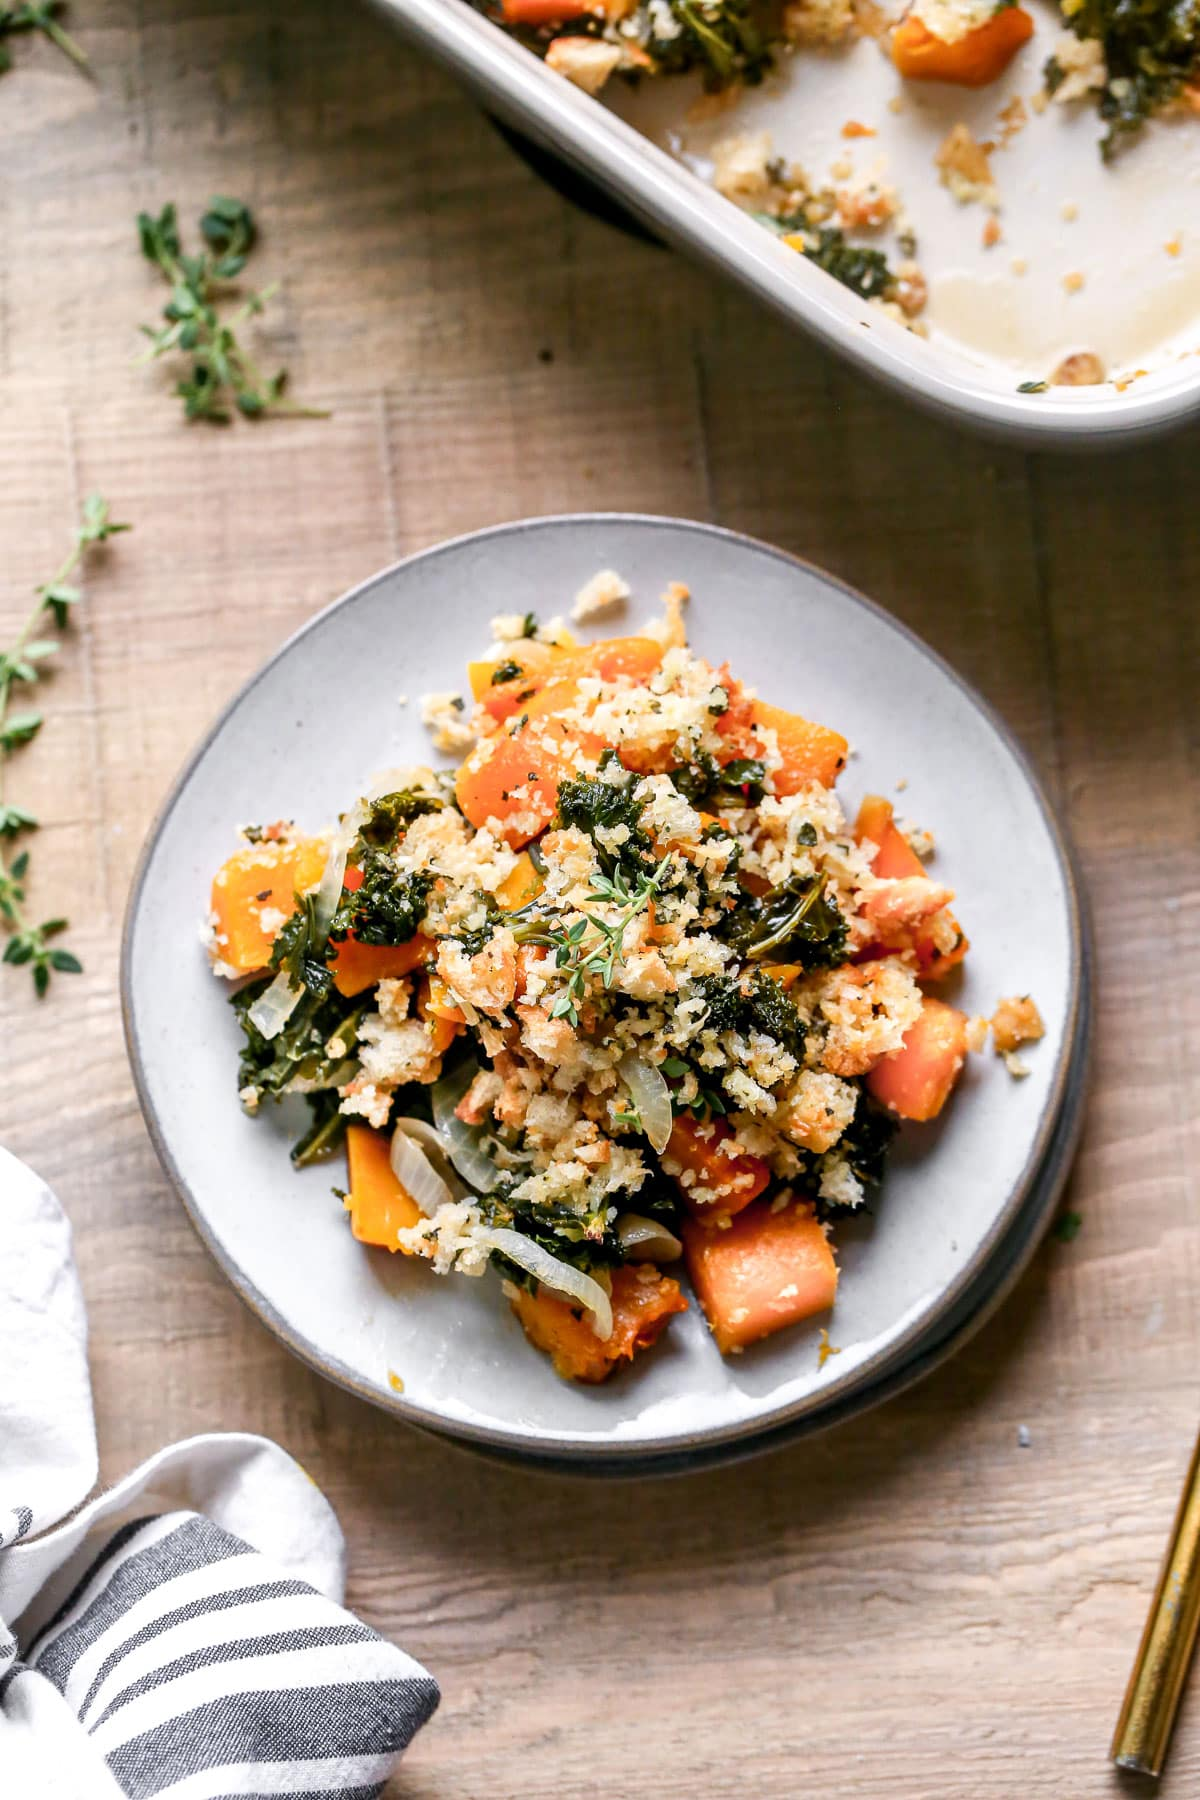 Healthy butternut squash casserole on a plate